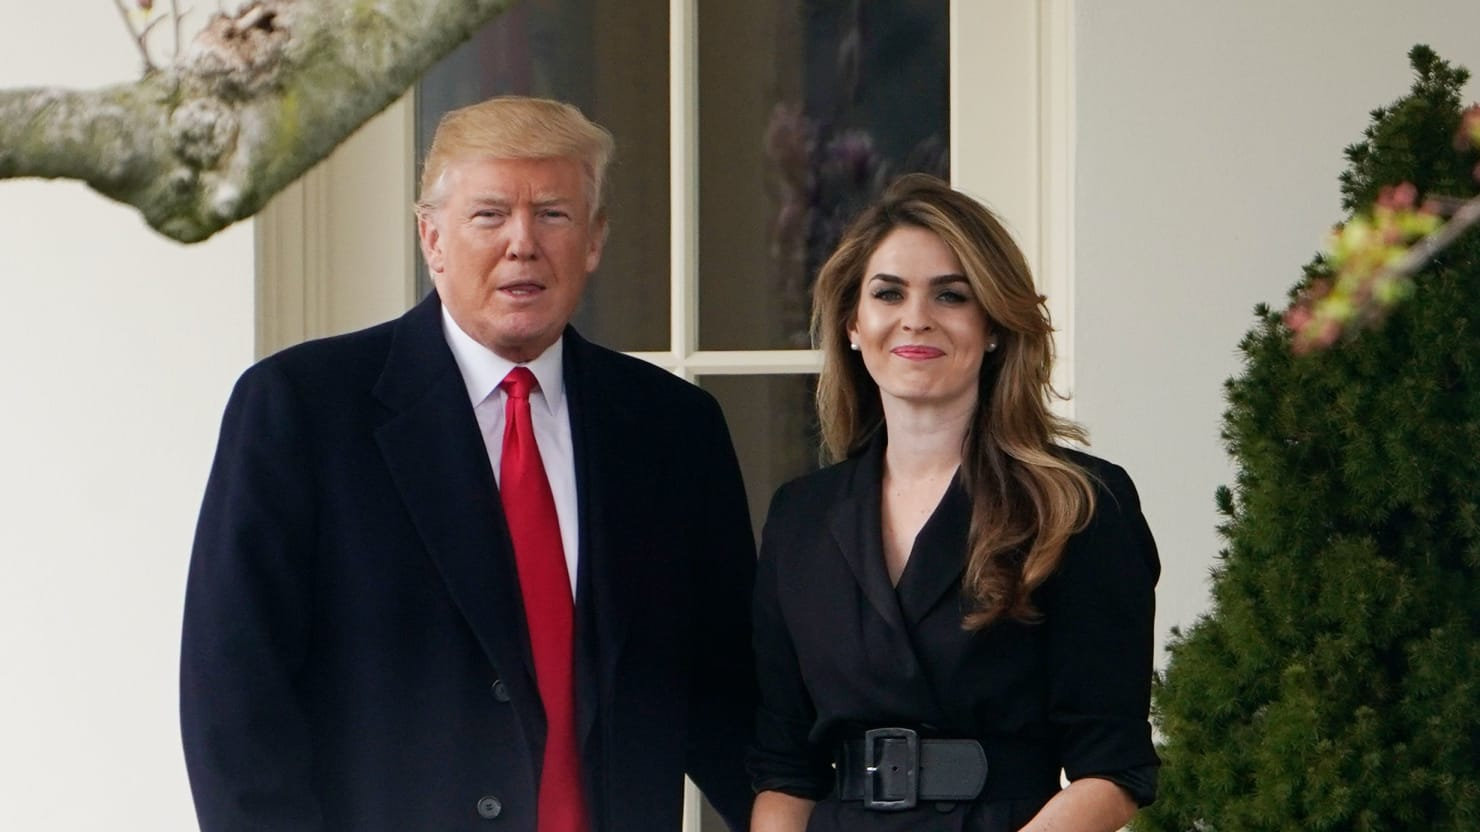 White House Counsel: Hope Hicks Is 'Immune' From Questions About Her Time in Trump Administration